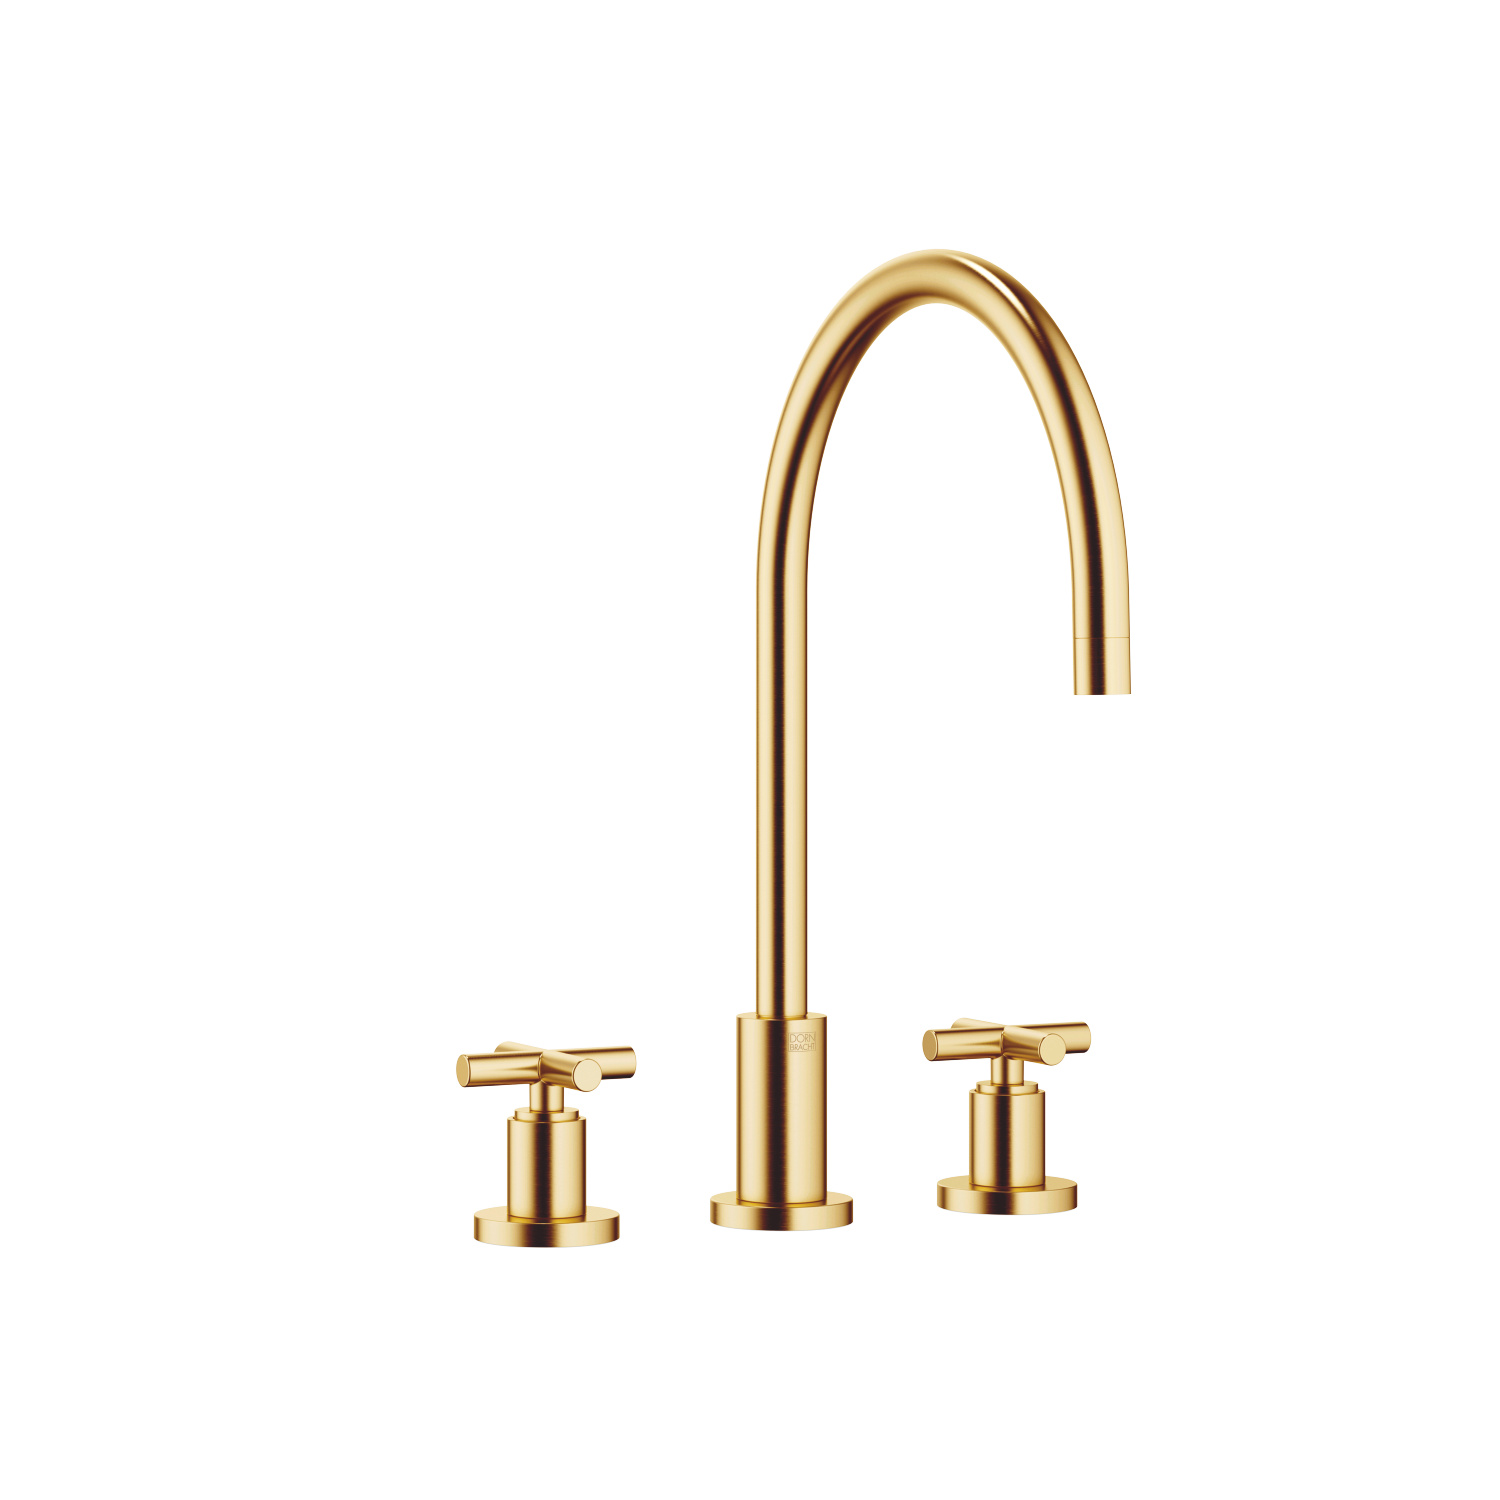 Three-hole mixer - brushed Durabrass